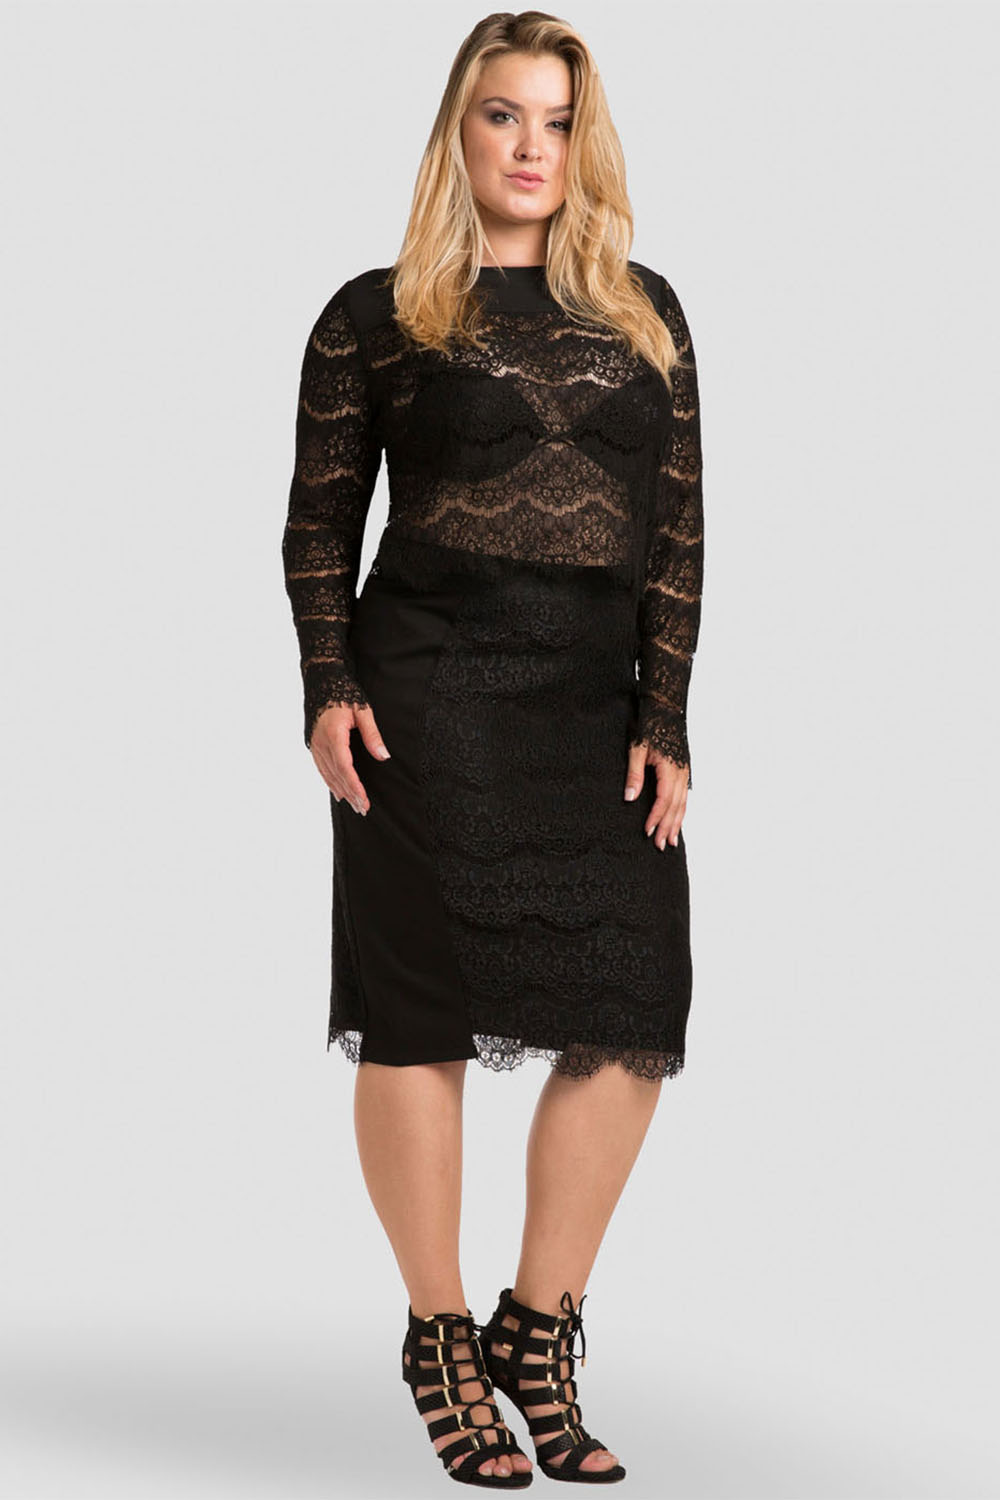 Women plus size black lace midi skirt